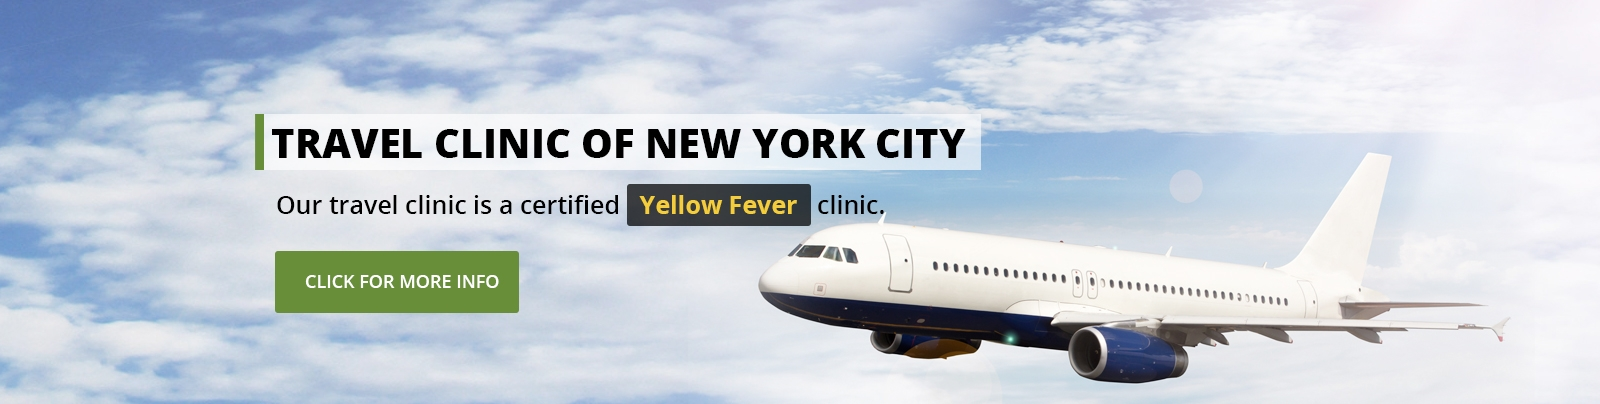 Travel Clinic Of New York City (@travelclinicnyc) Cover Image